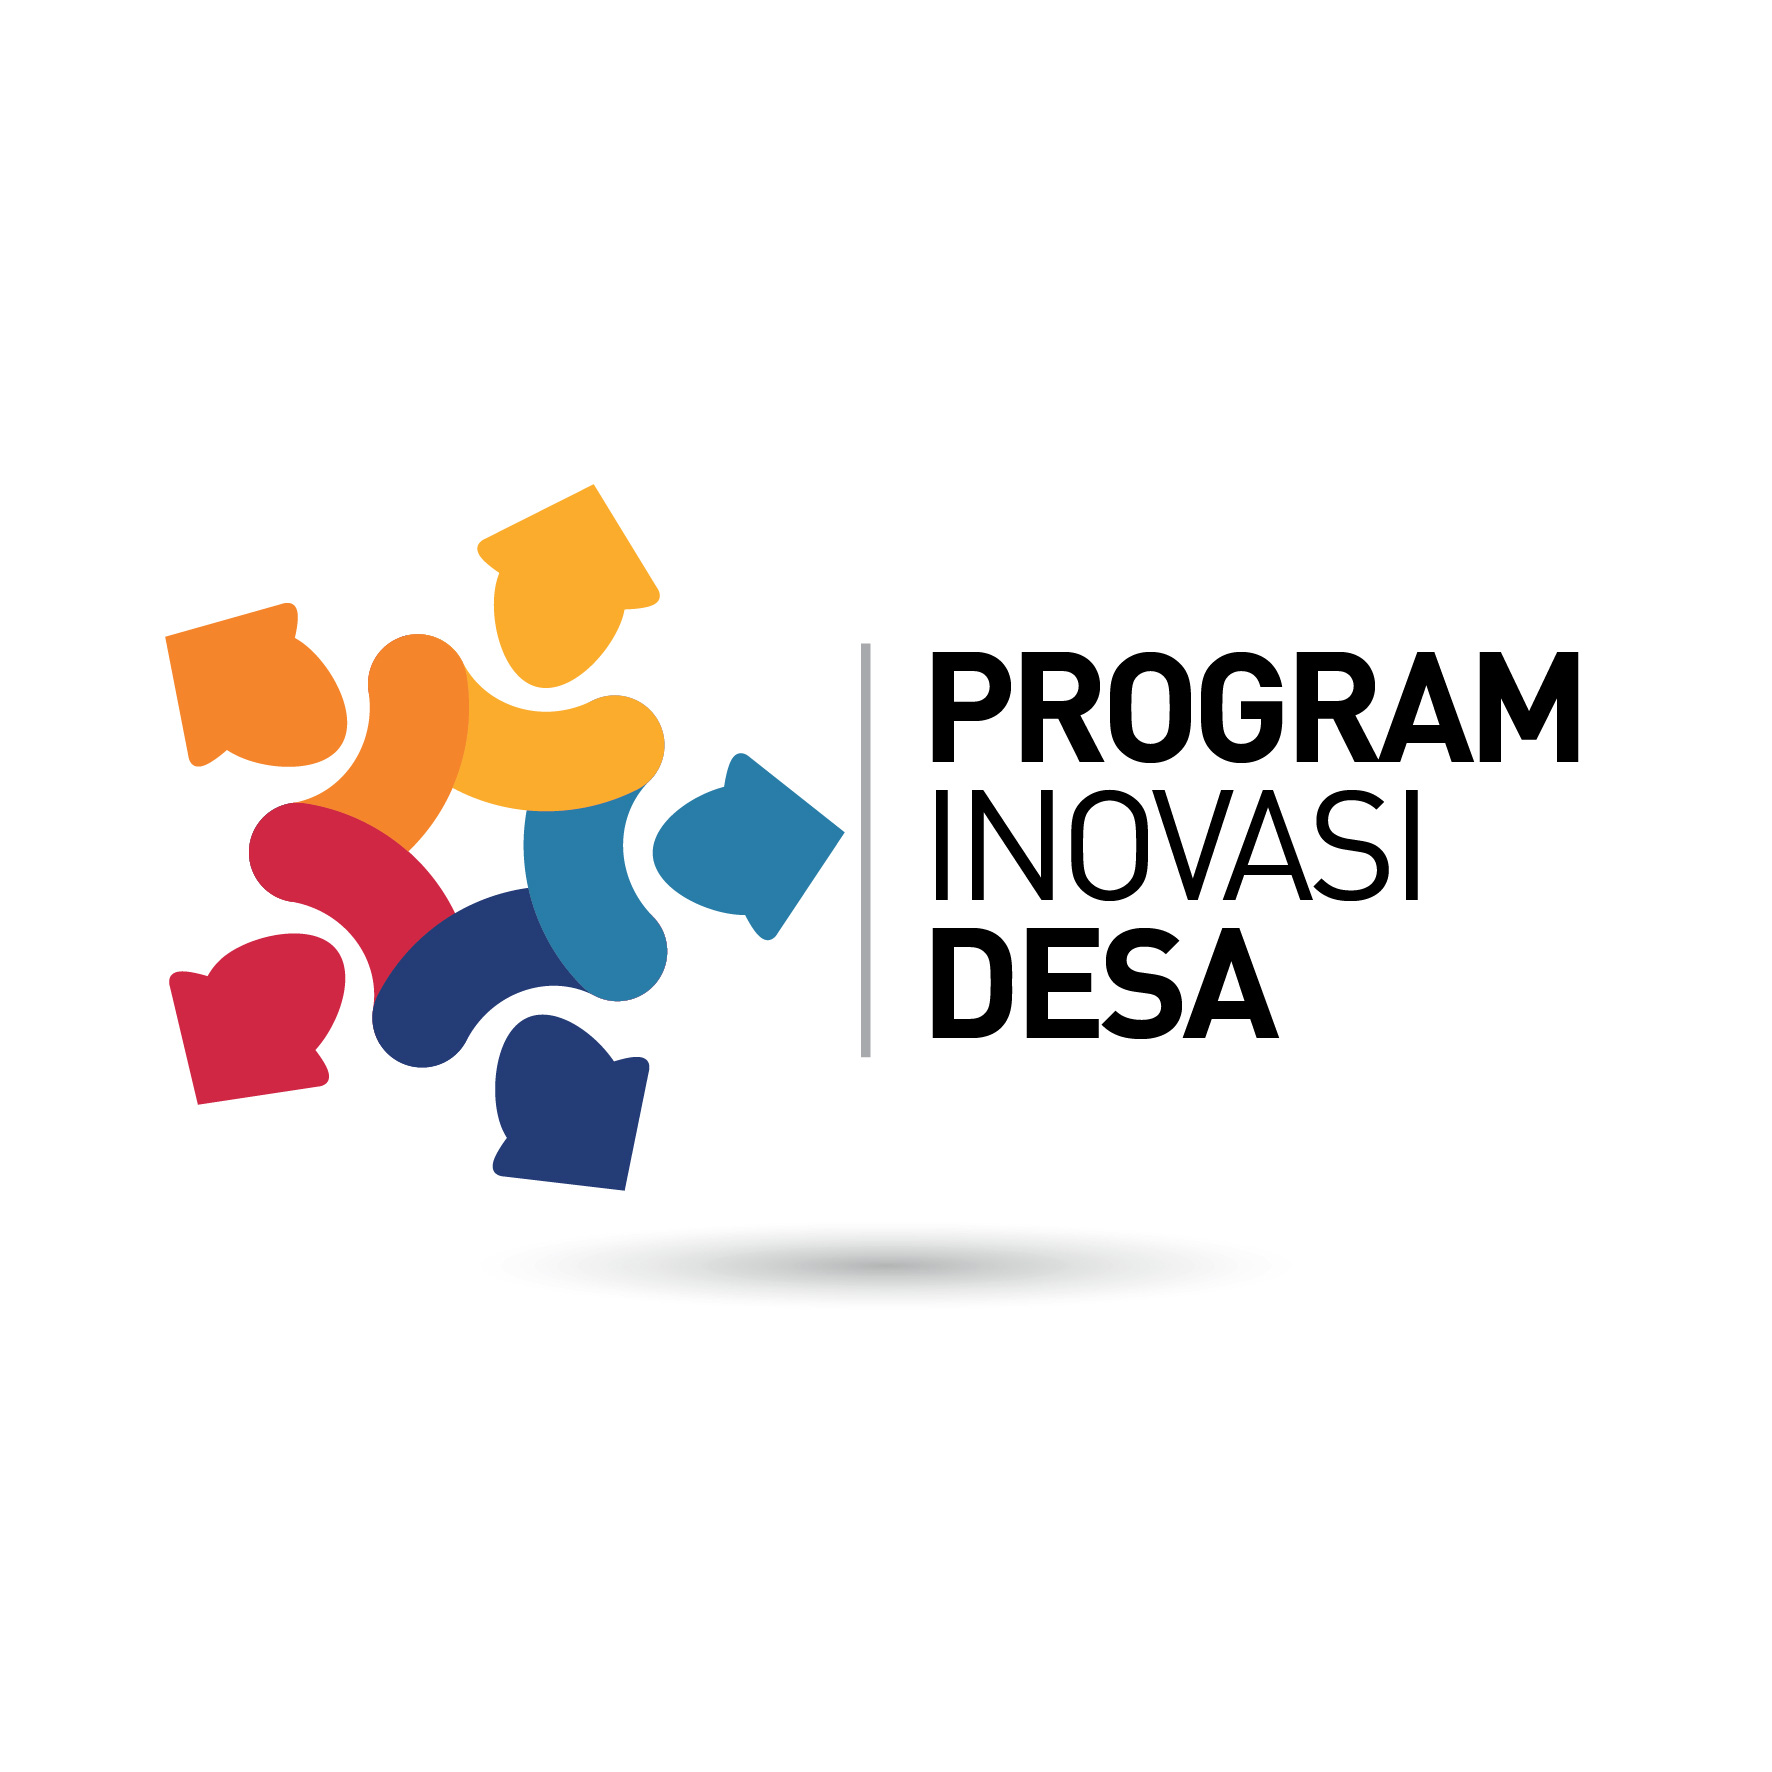 logo-program-inovasi-desa-06